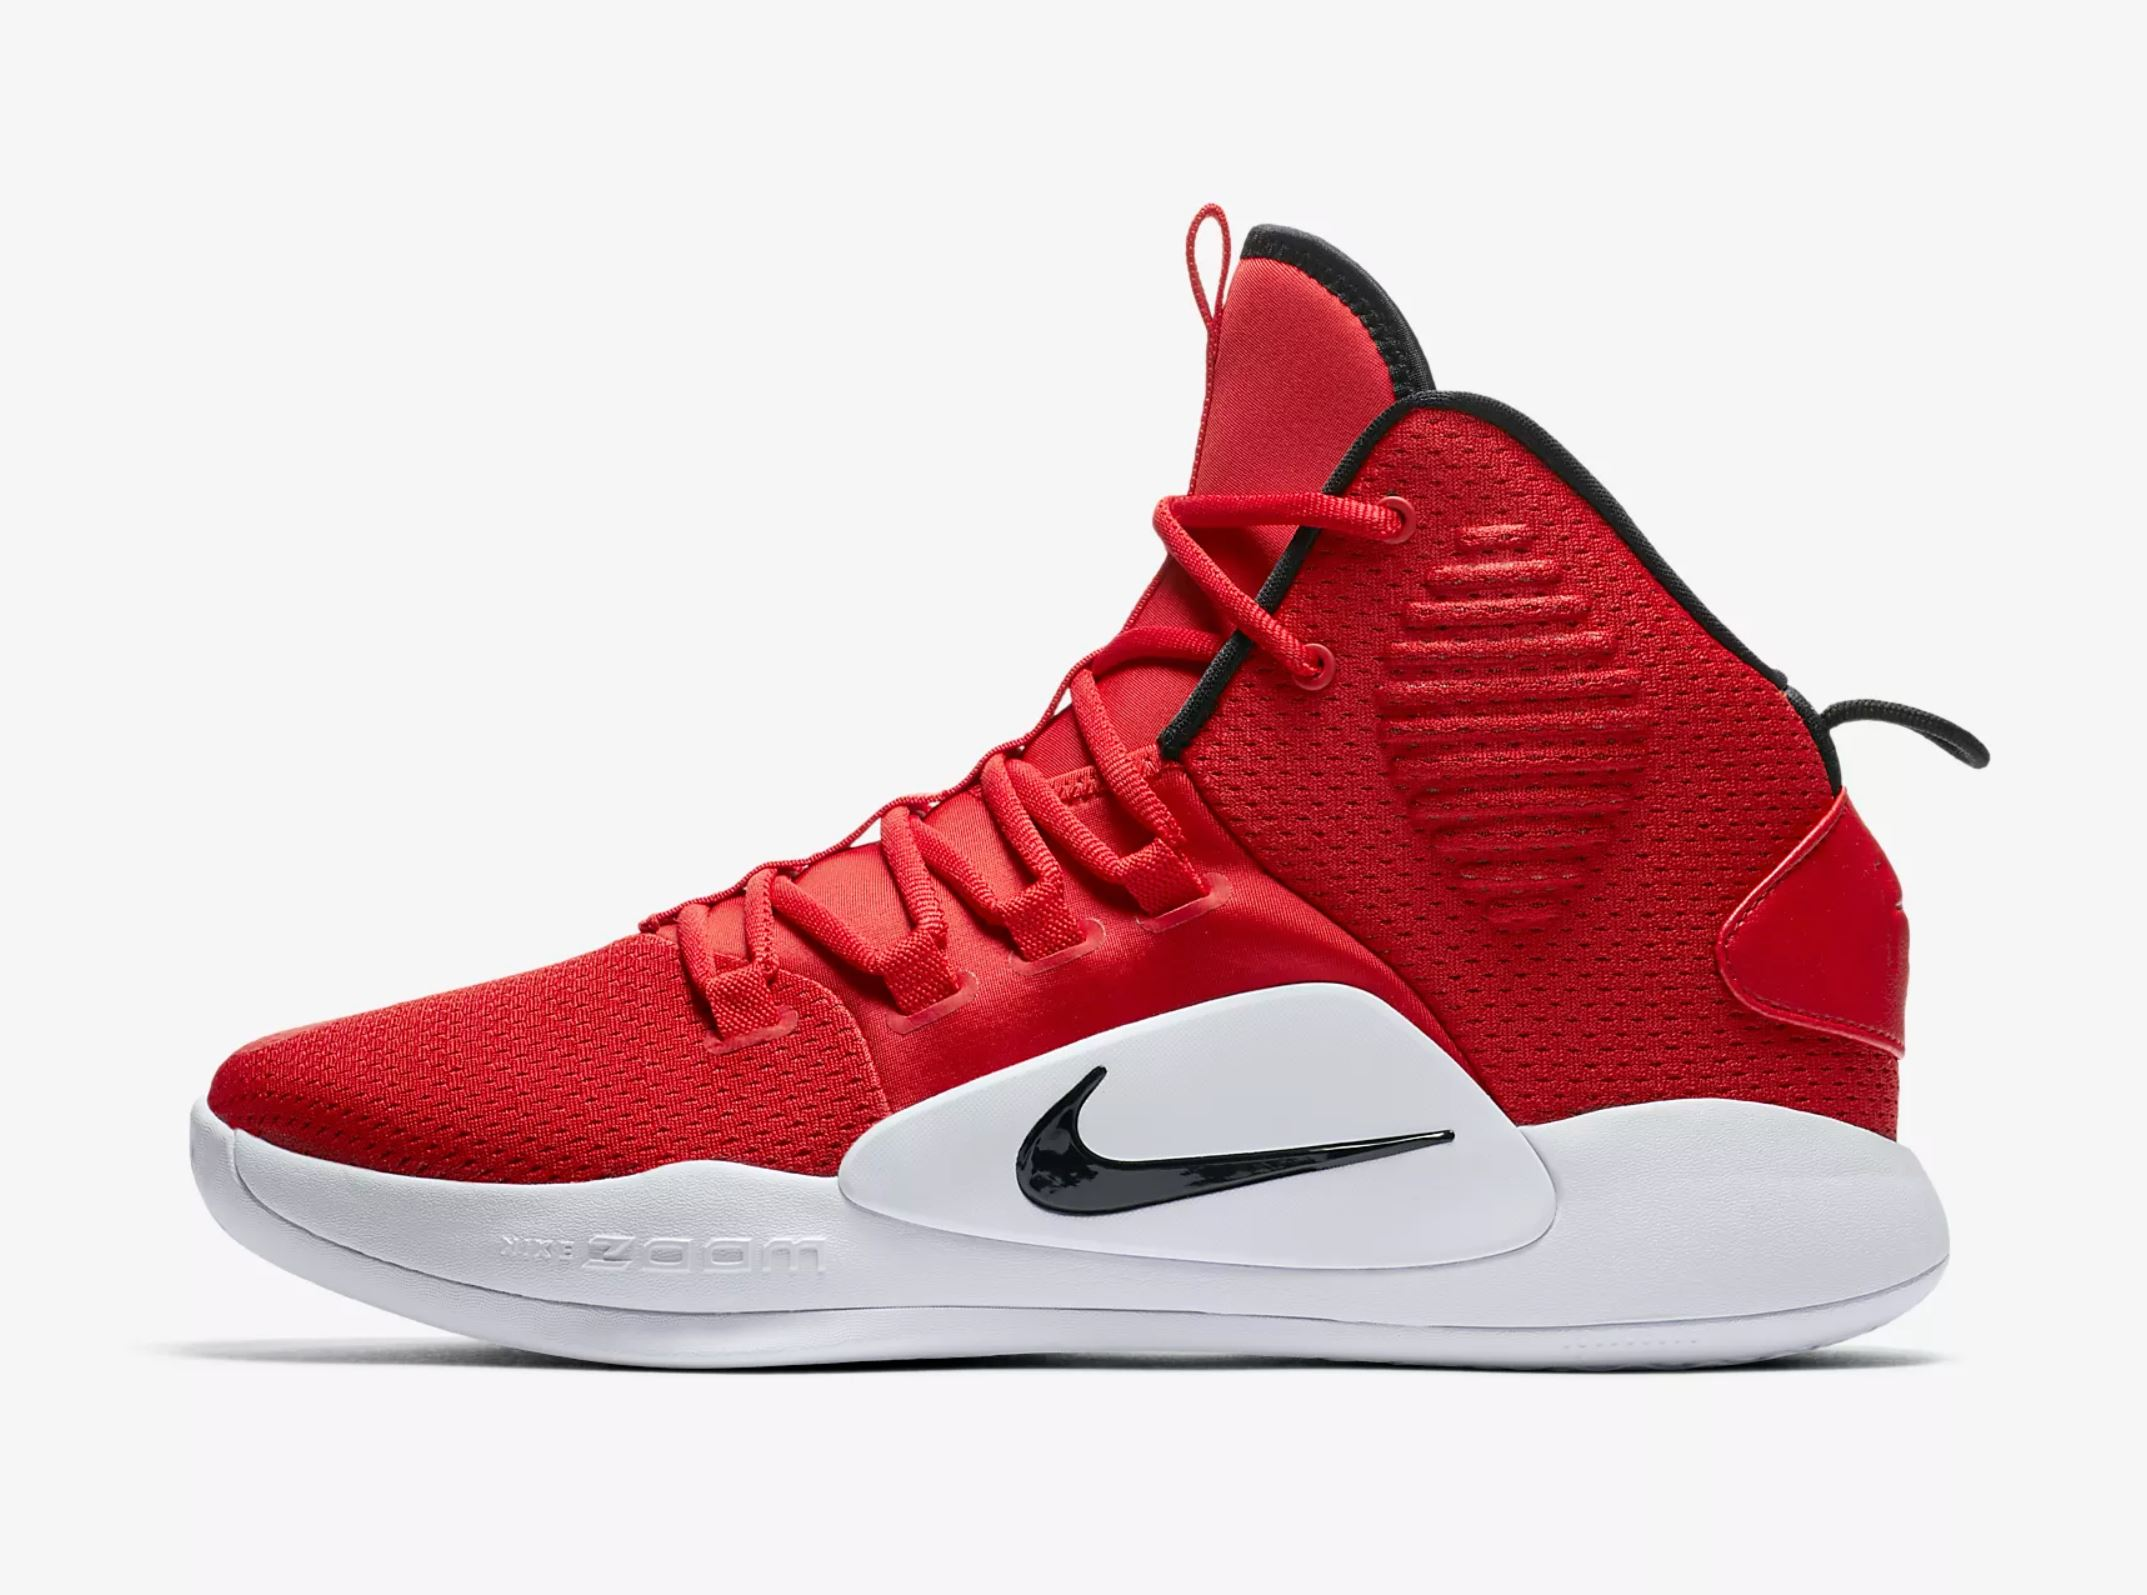 check out 8ba34 23579 store university red nike hyperdunk x release 930e2 abcfb